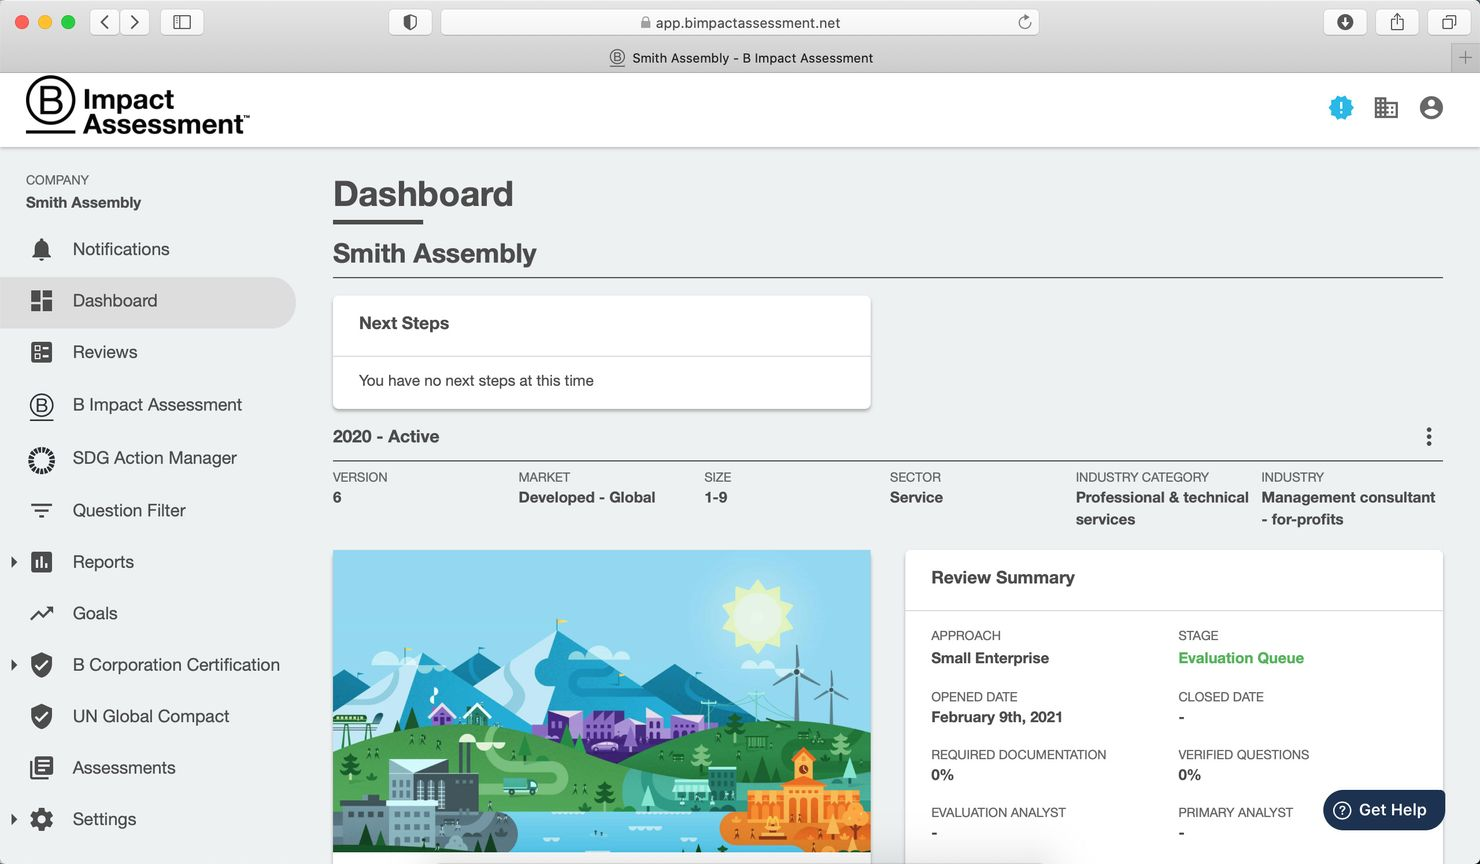 a screenshot of our dashboard in the b impact assessment showing that we submitted our application in february and are now in the evaluation queue